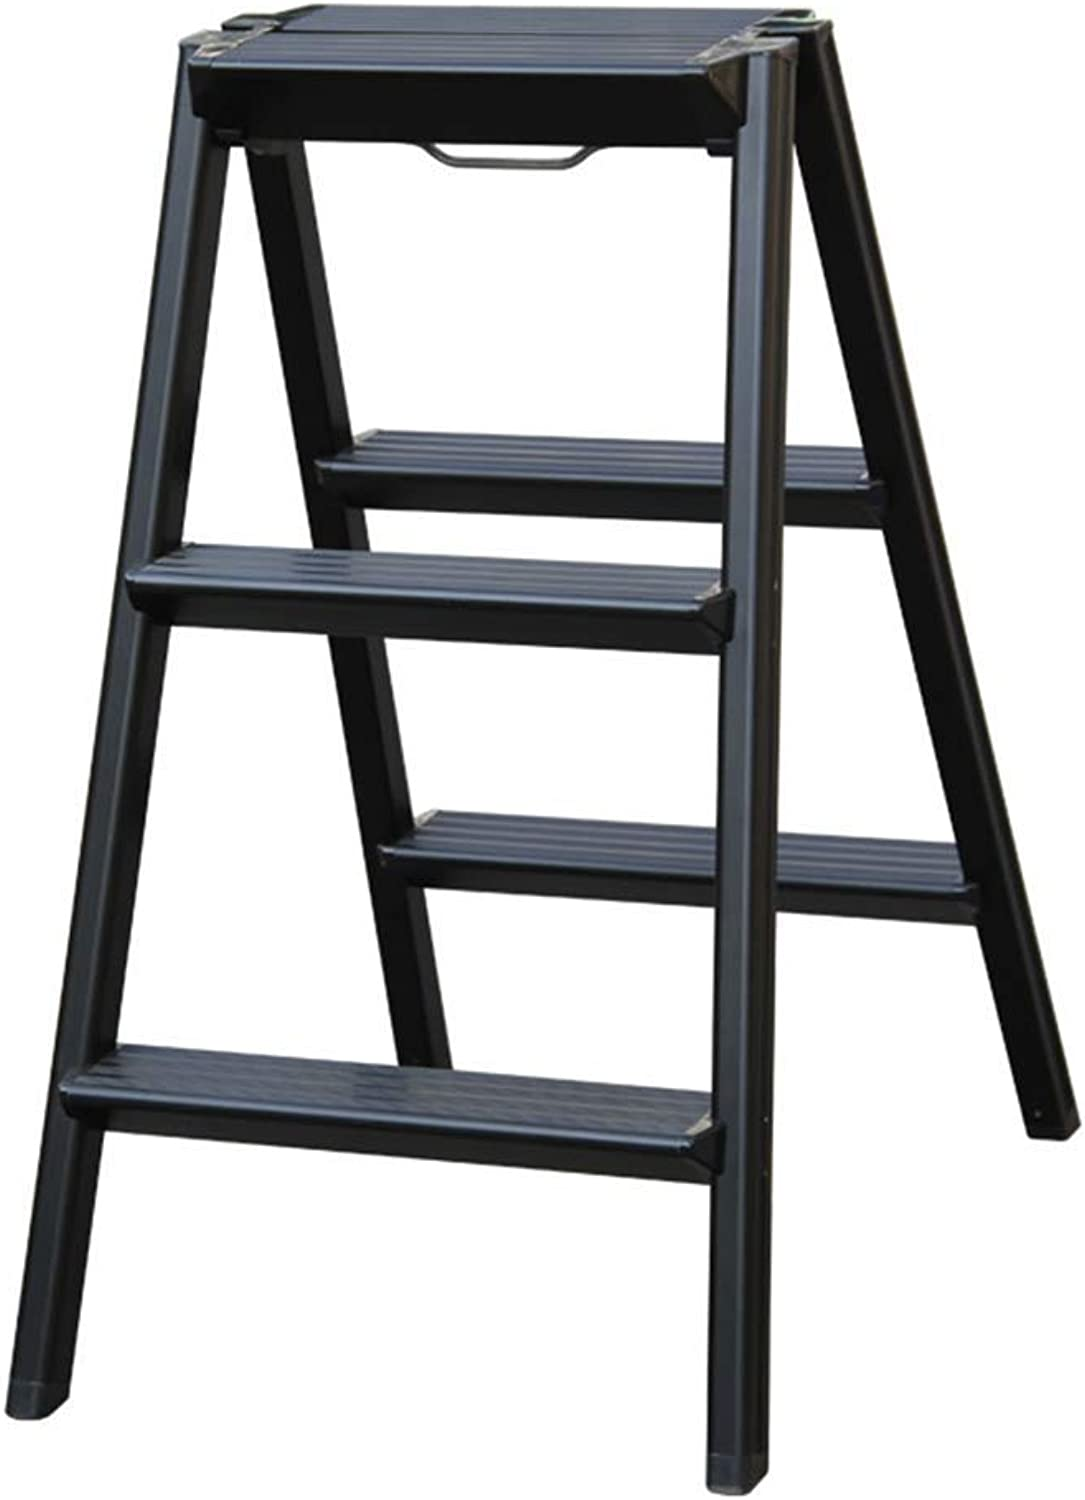 SCBED Aluminum Folding Ladder for Home, Staircase Small Ladder Ladder Staircase Ladder Multi-Purpose Staircase Creative Portable Stool Stairs